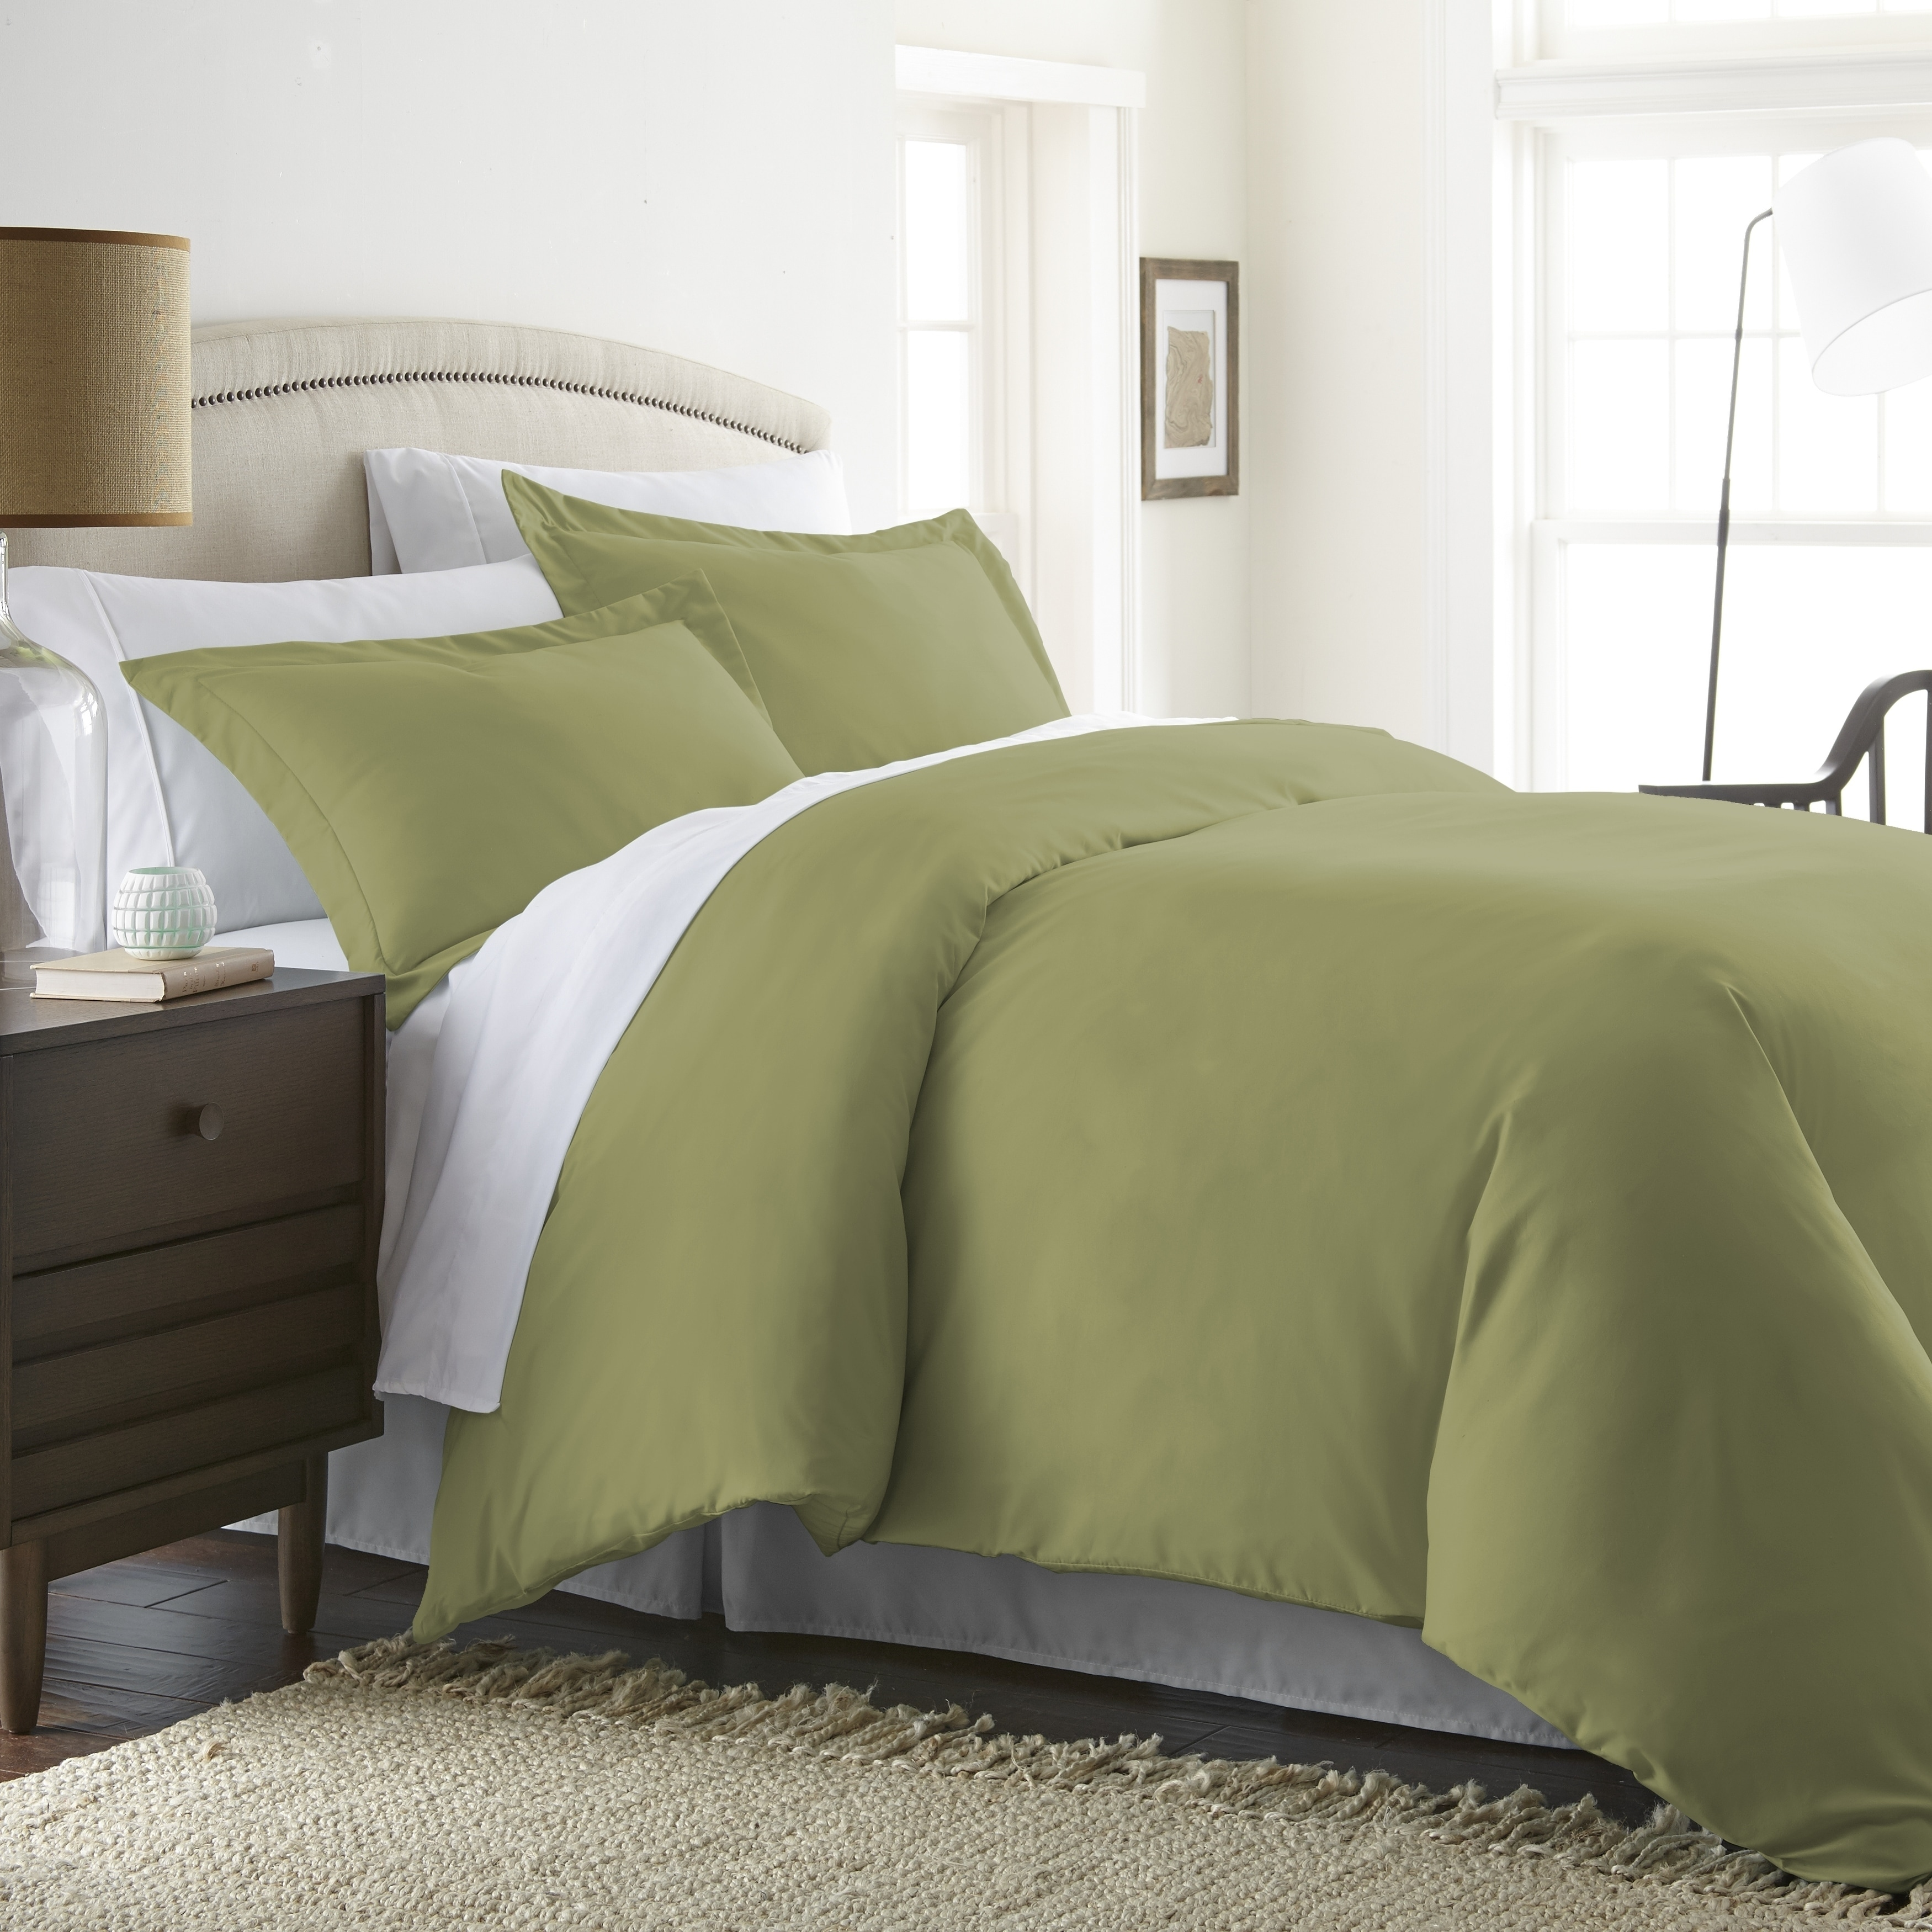 ae6dd8ded8fc Shop Becky Cameron Hotel Quality 3-Piece Duvet Cover Set - On Sale - Free  Shipping On Orders Over  45 - Overstock - 10083333